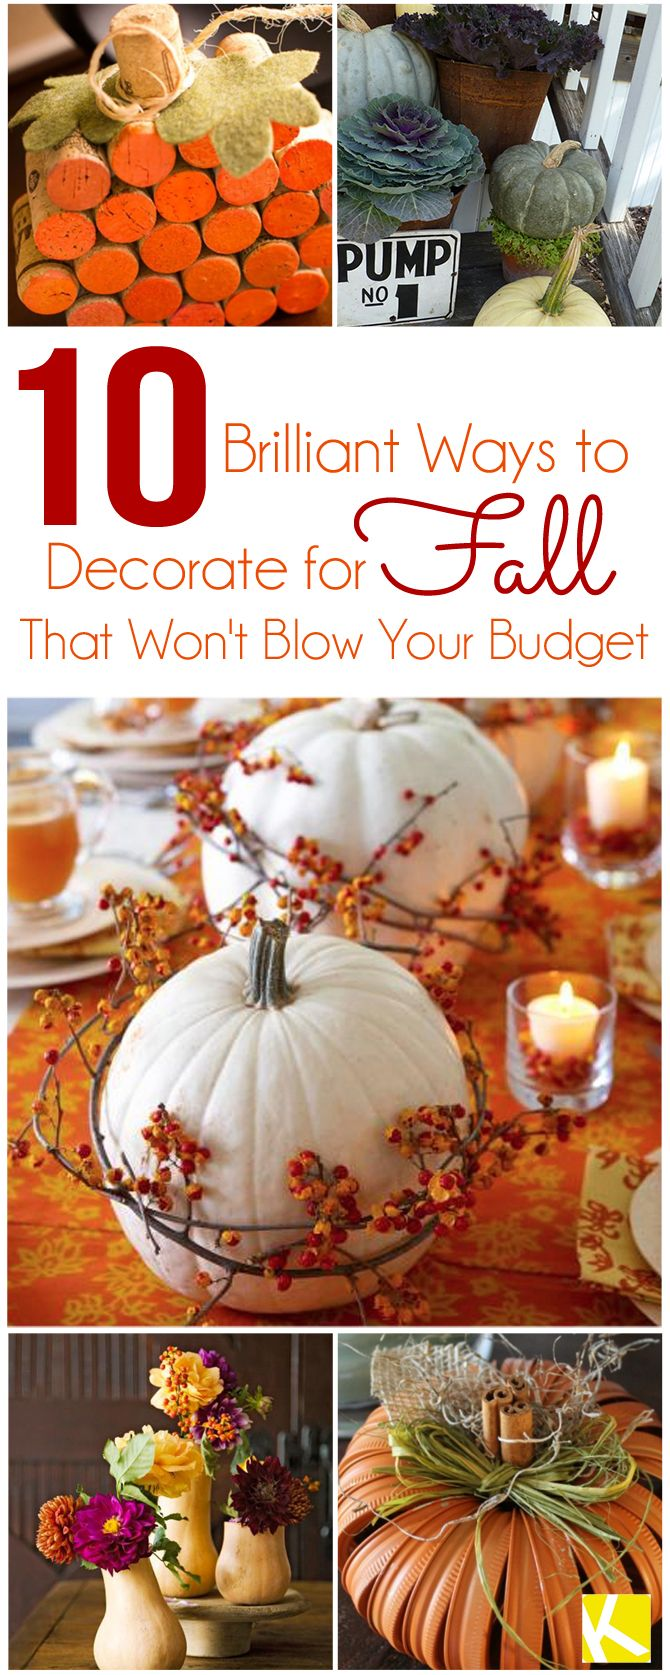 September Decorating Ideas Classy 10 Brilliant Ways To Decorate For Fall That Won't Blow Your Budget . Design Ideas